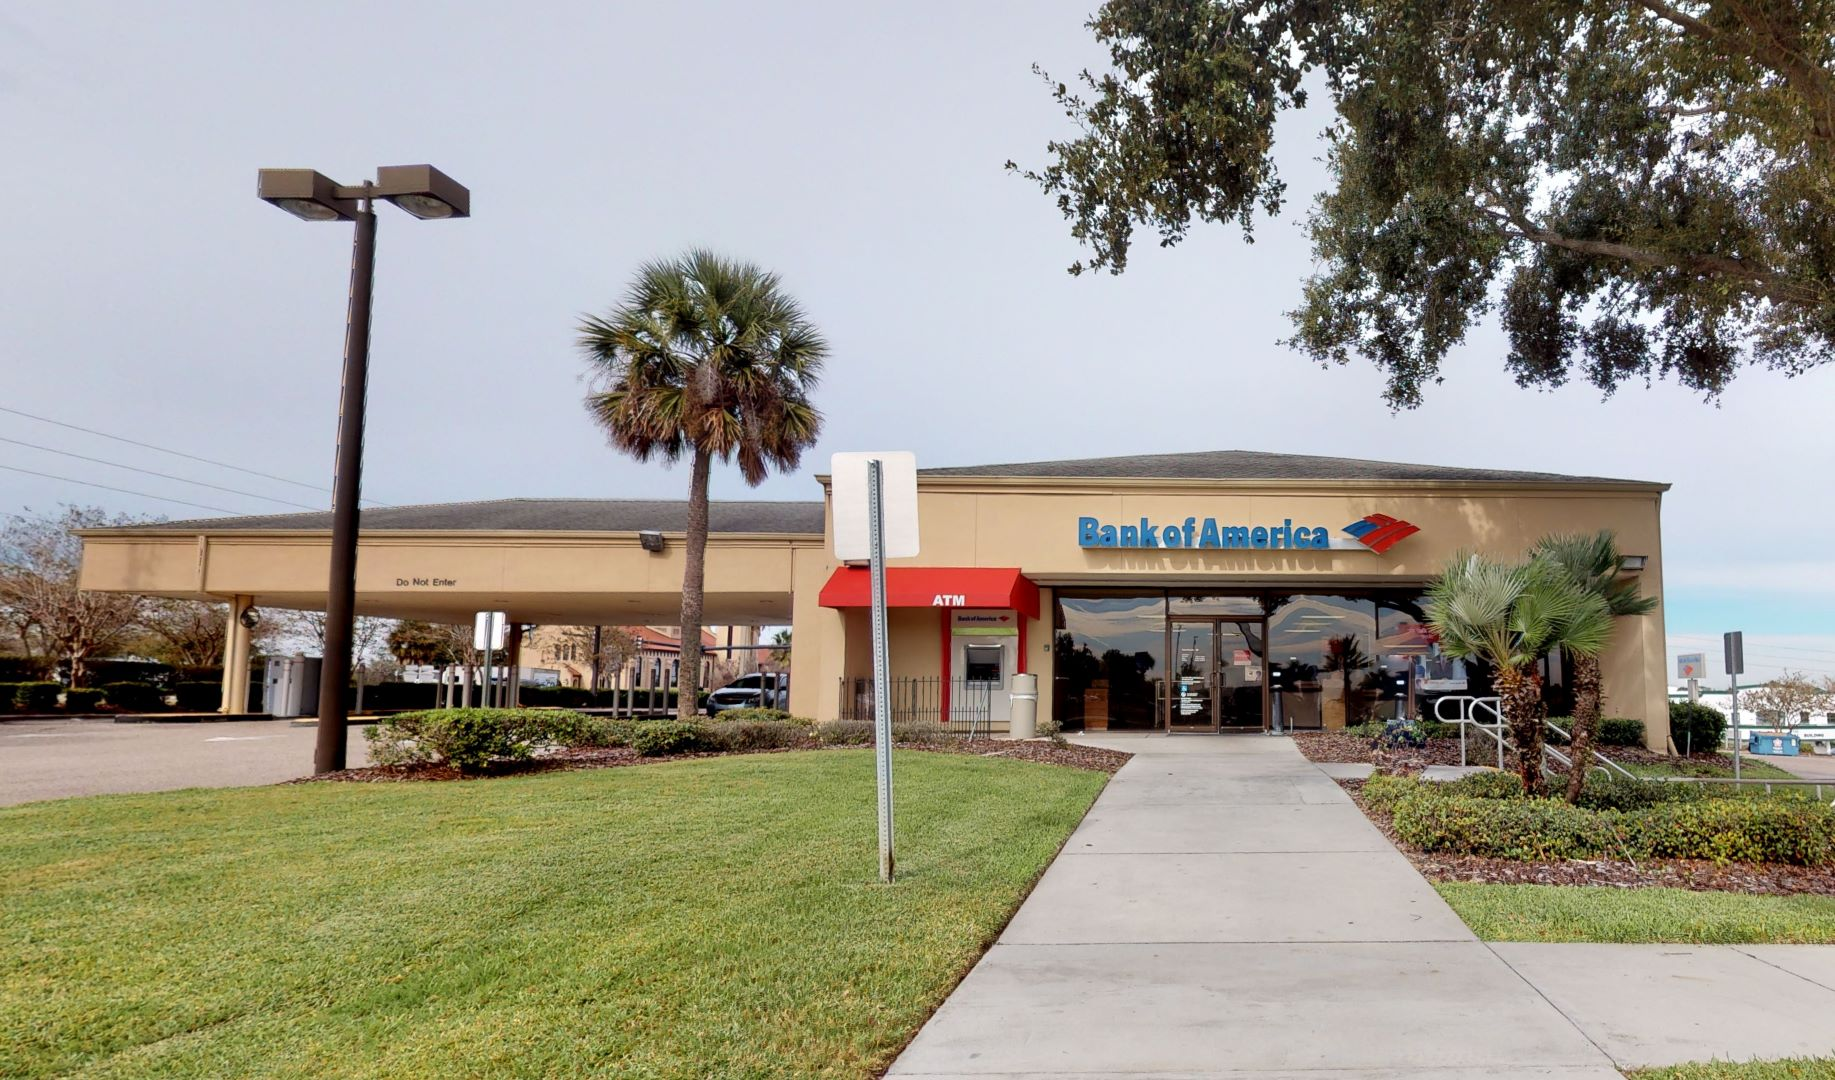 Bank of America financial center with drive-thru ATM and teller | 1100 State Road 60 E, Lake Wales, FL 33853